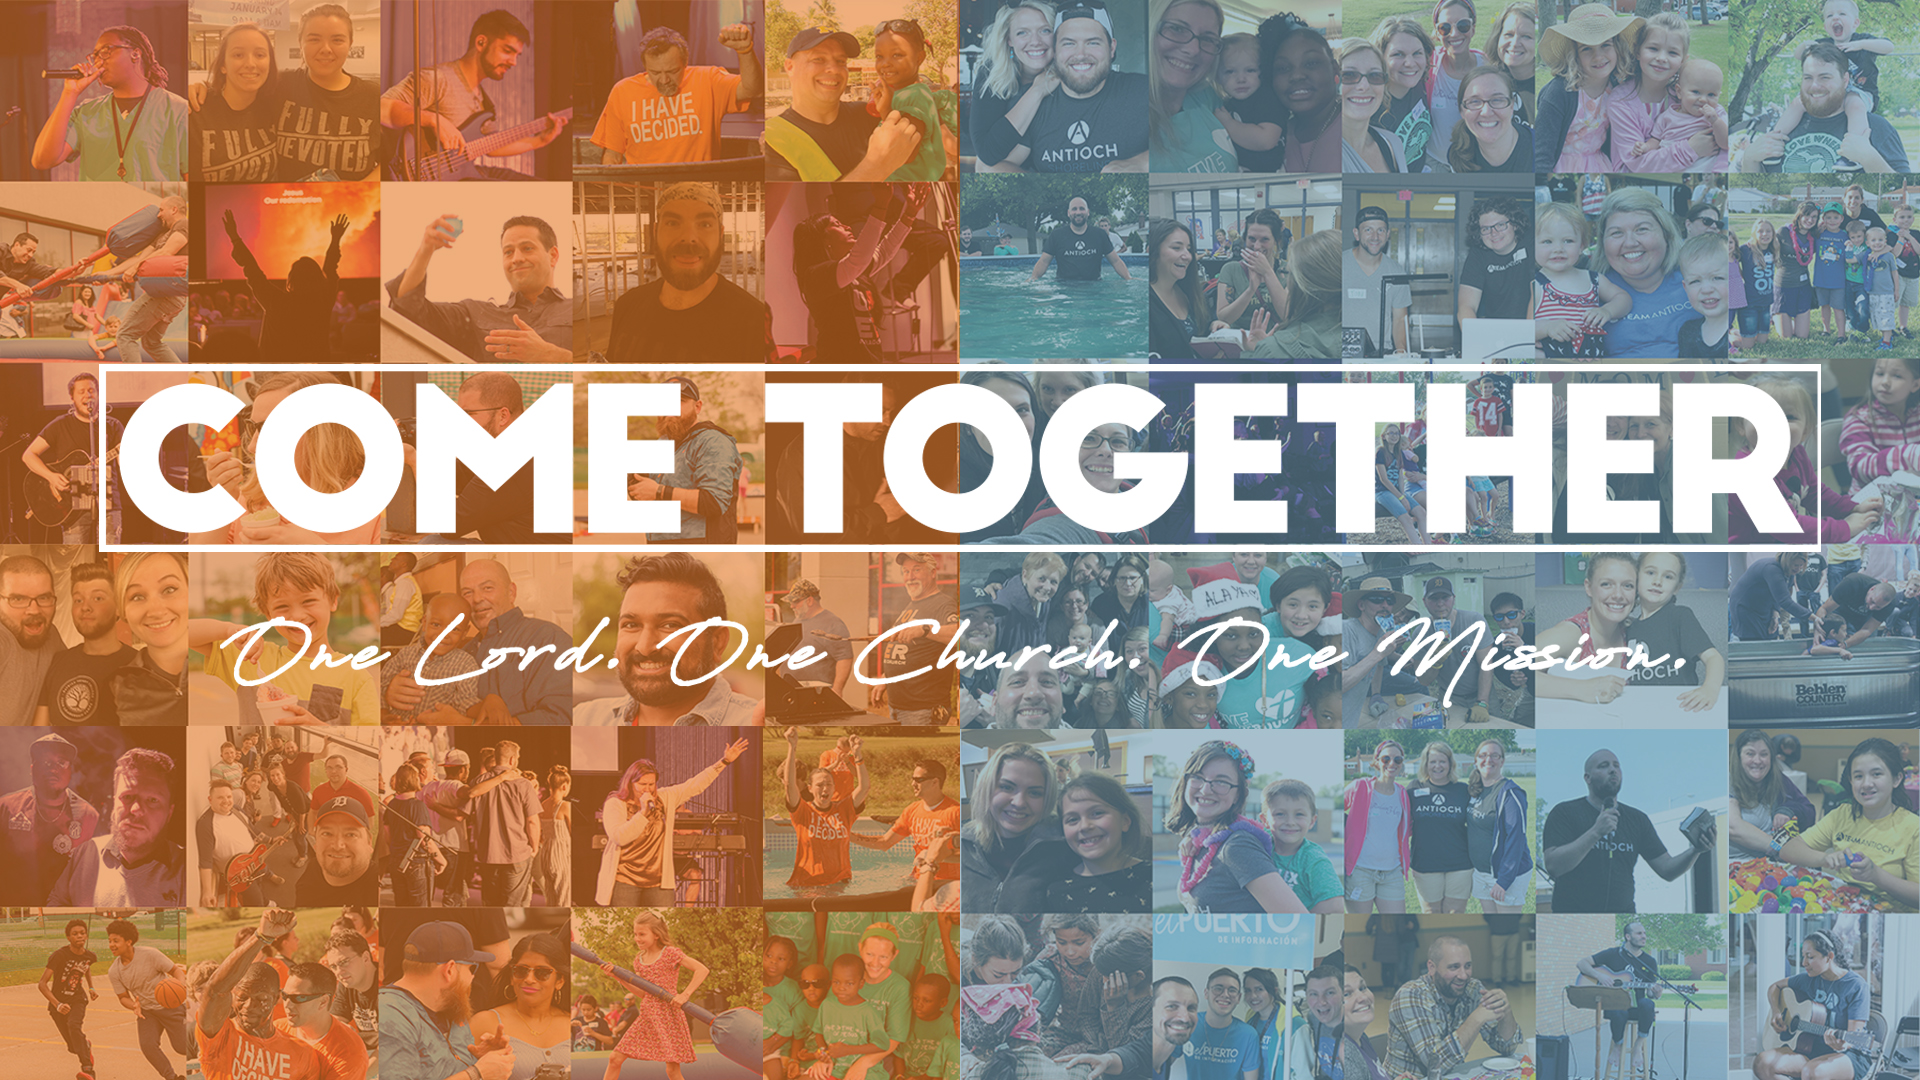 Come-Together_1920x1080.jpg